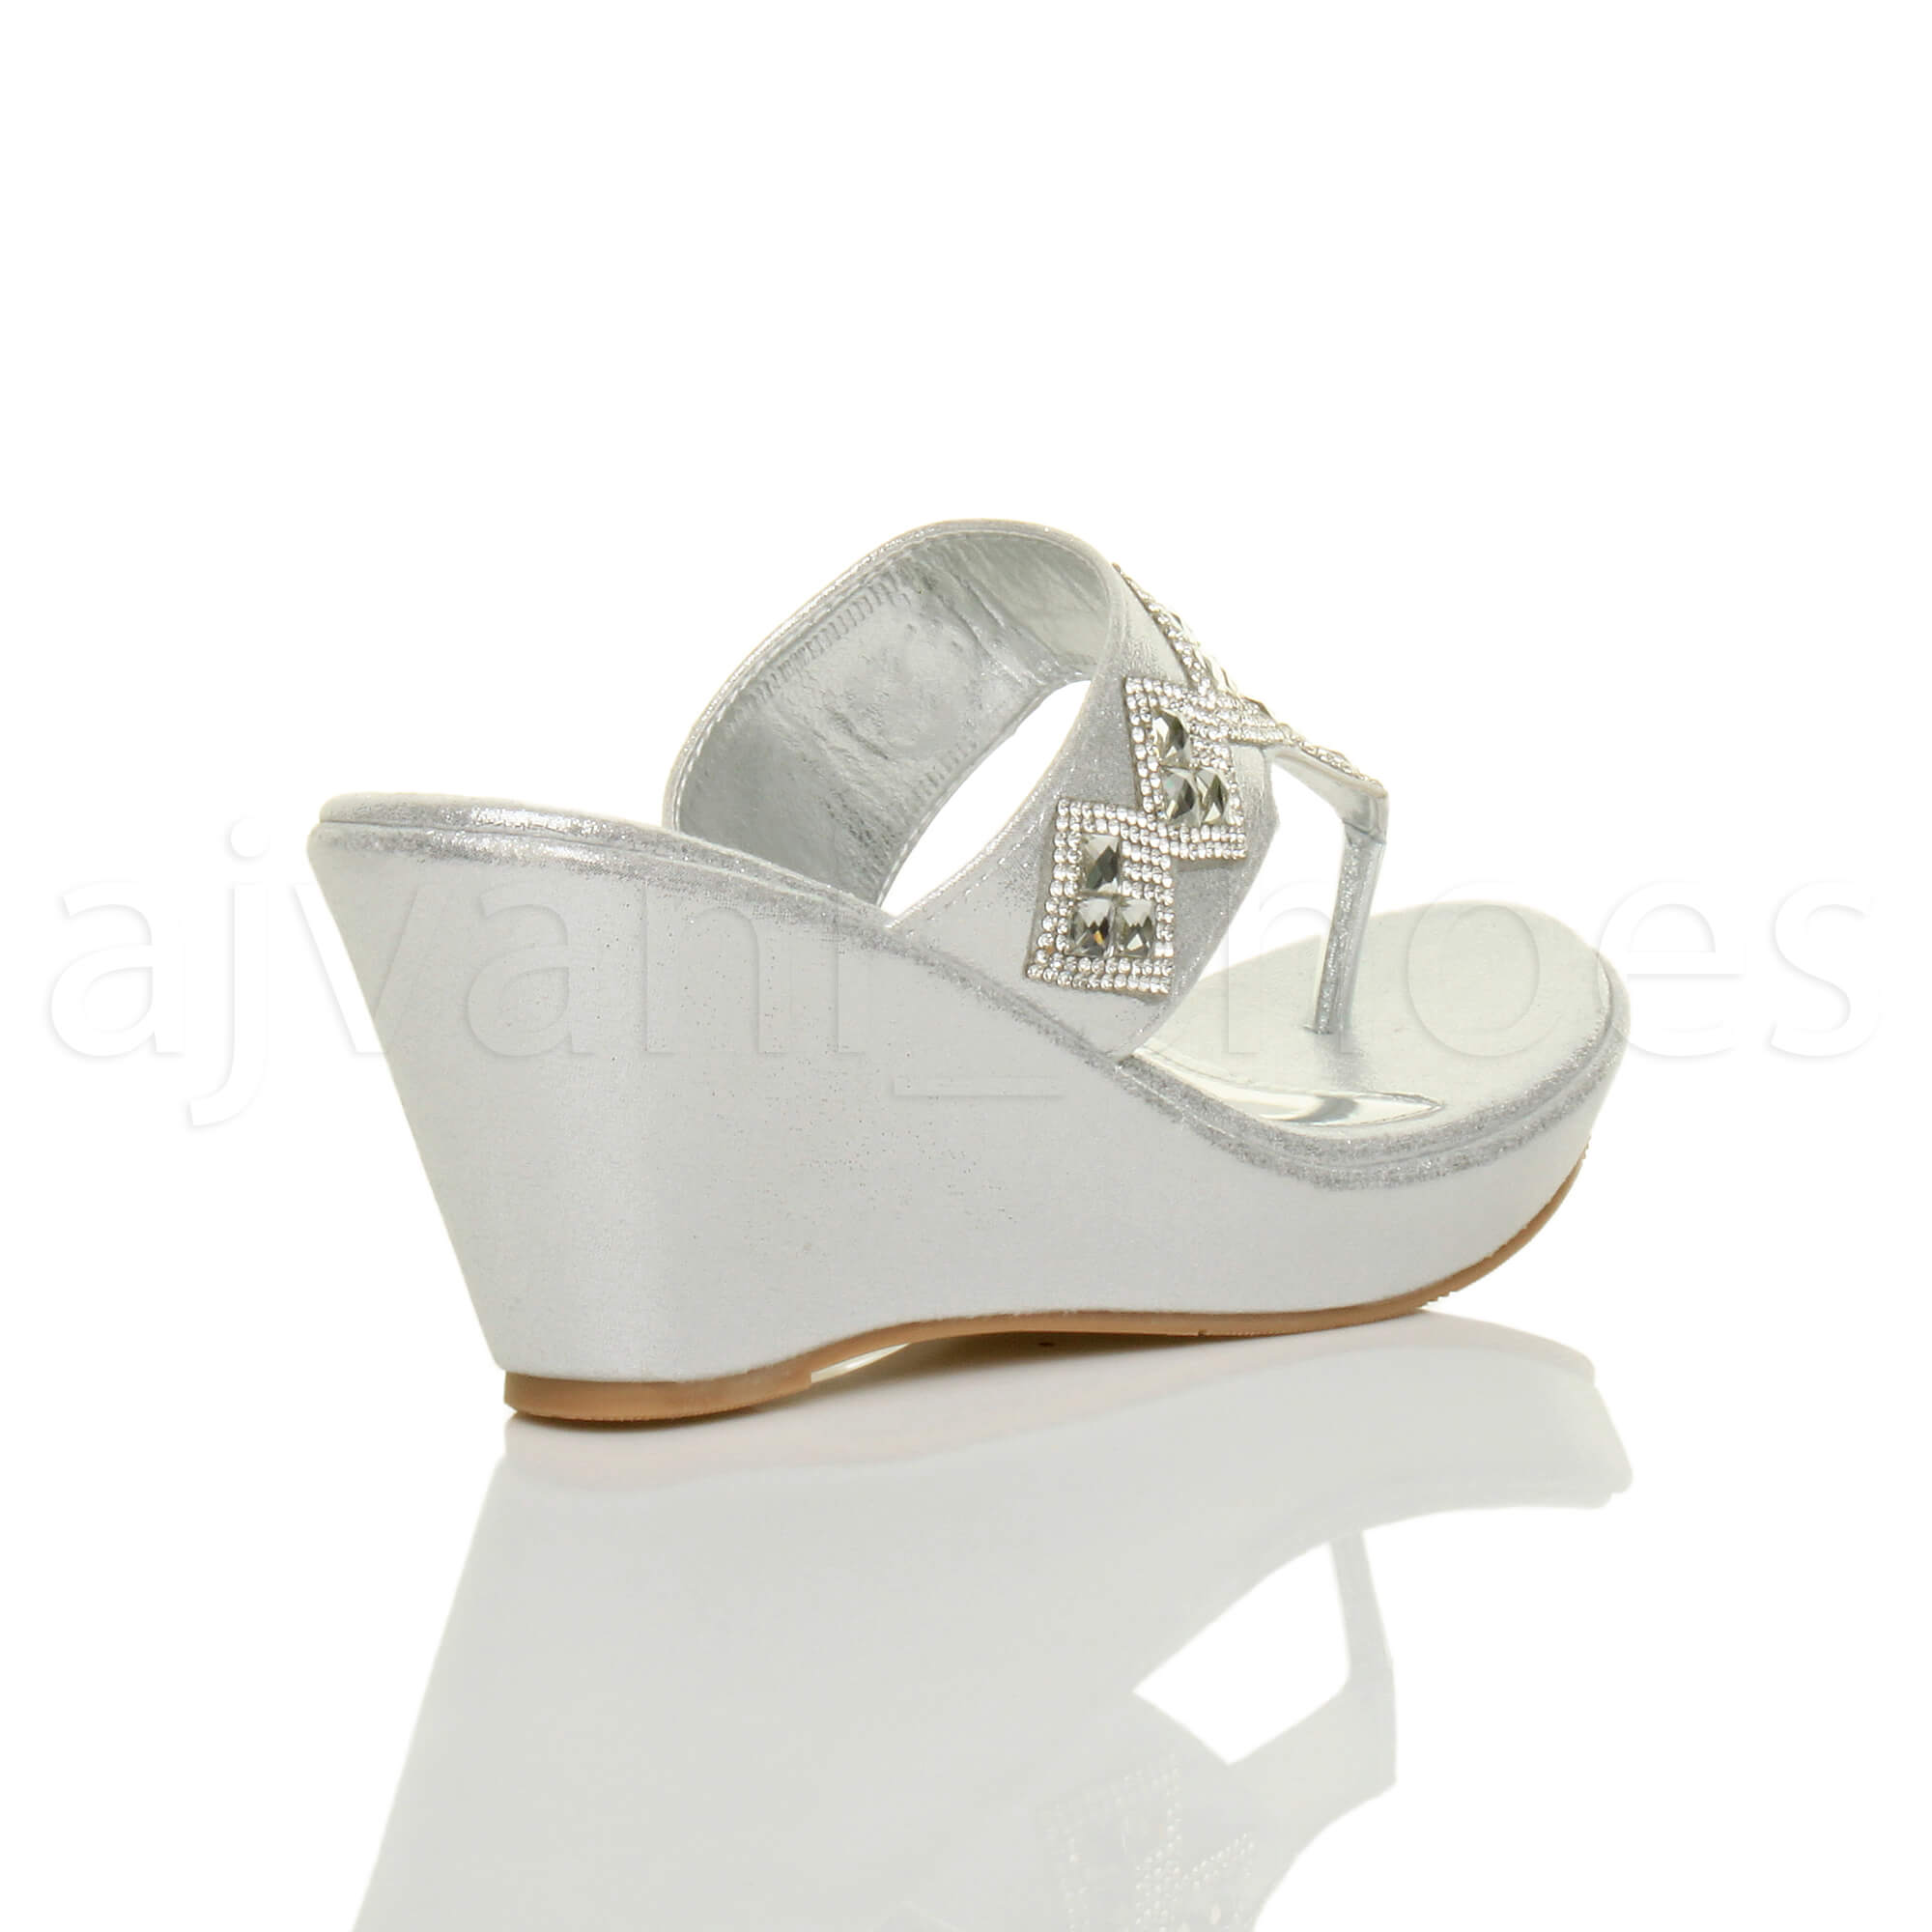 WOMENS-LADIES-HIGH-WEDGE-T-BAR-TOE-POST-DIAMANTE-PLATFORM-MULES-SANDALS-SIZE thumbnail 13